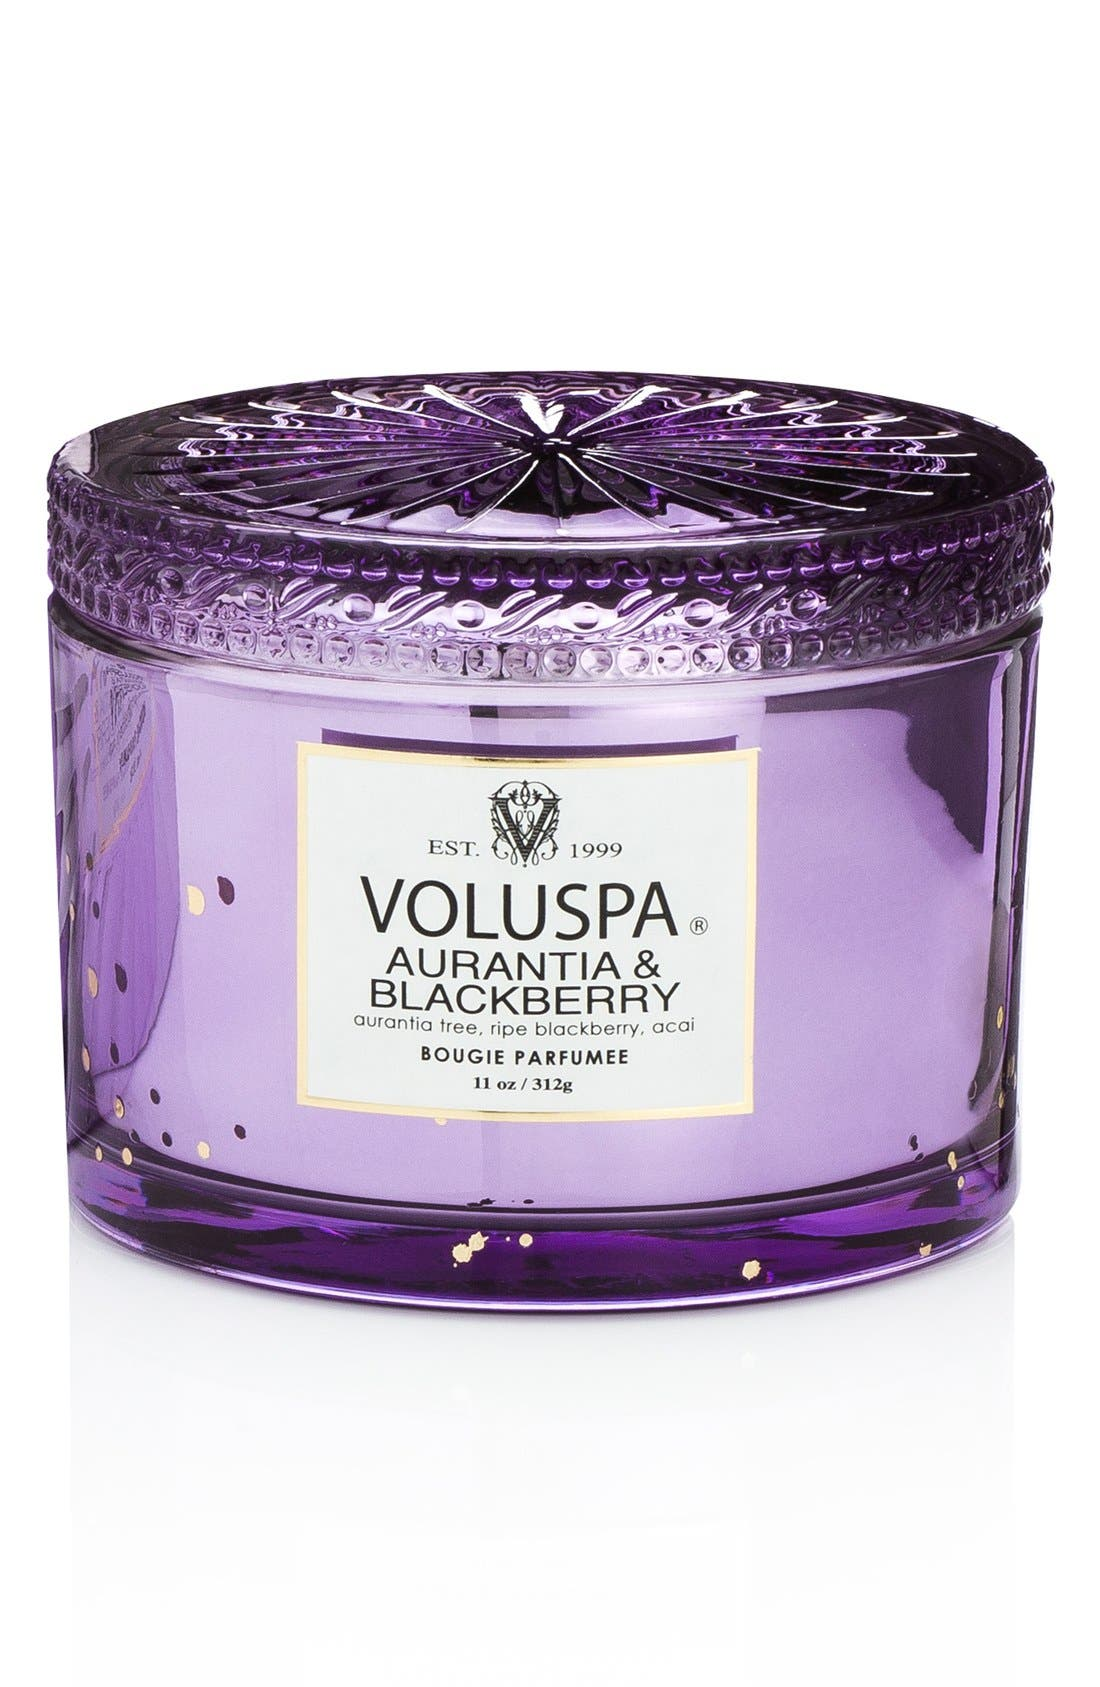 Maison Blanc - Aurantia & Blackberry Boxed Lidded Candle,                             Alternate thumbnail 2, color,                             No Color